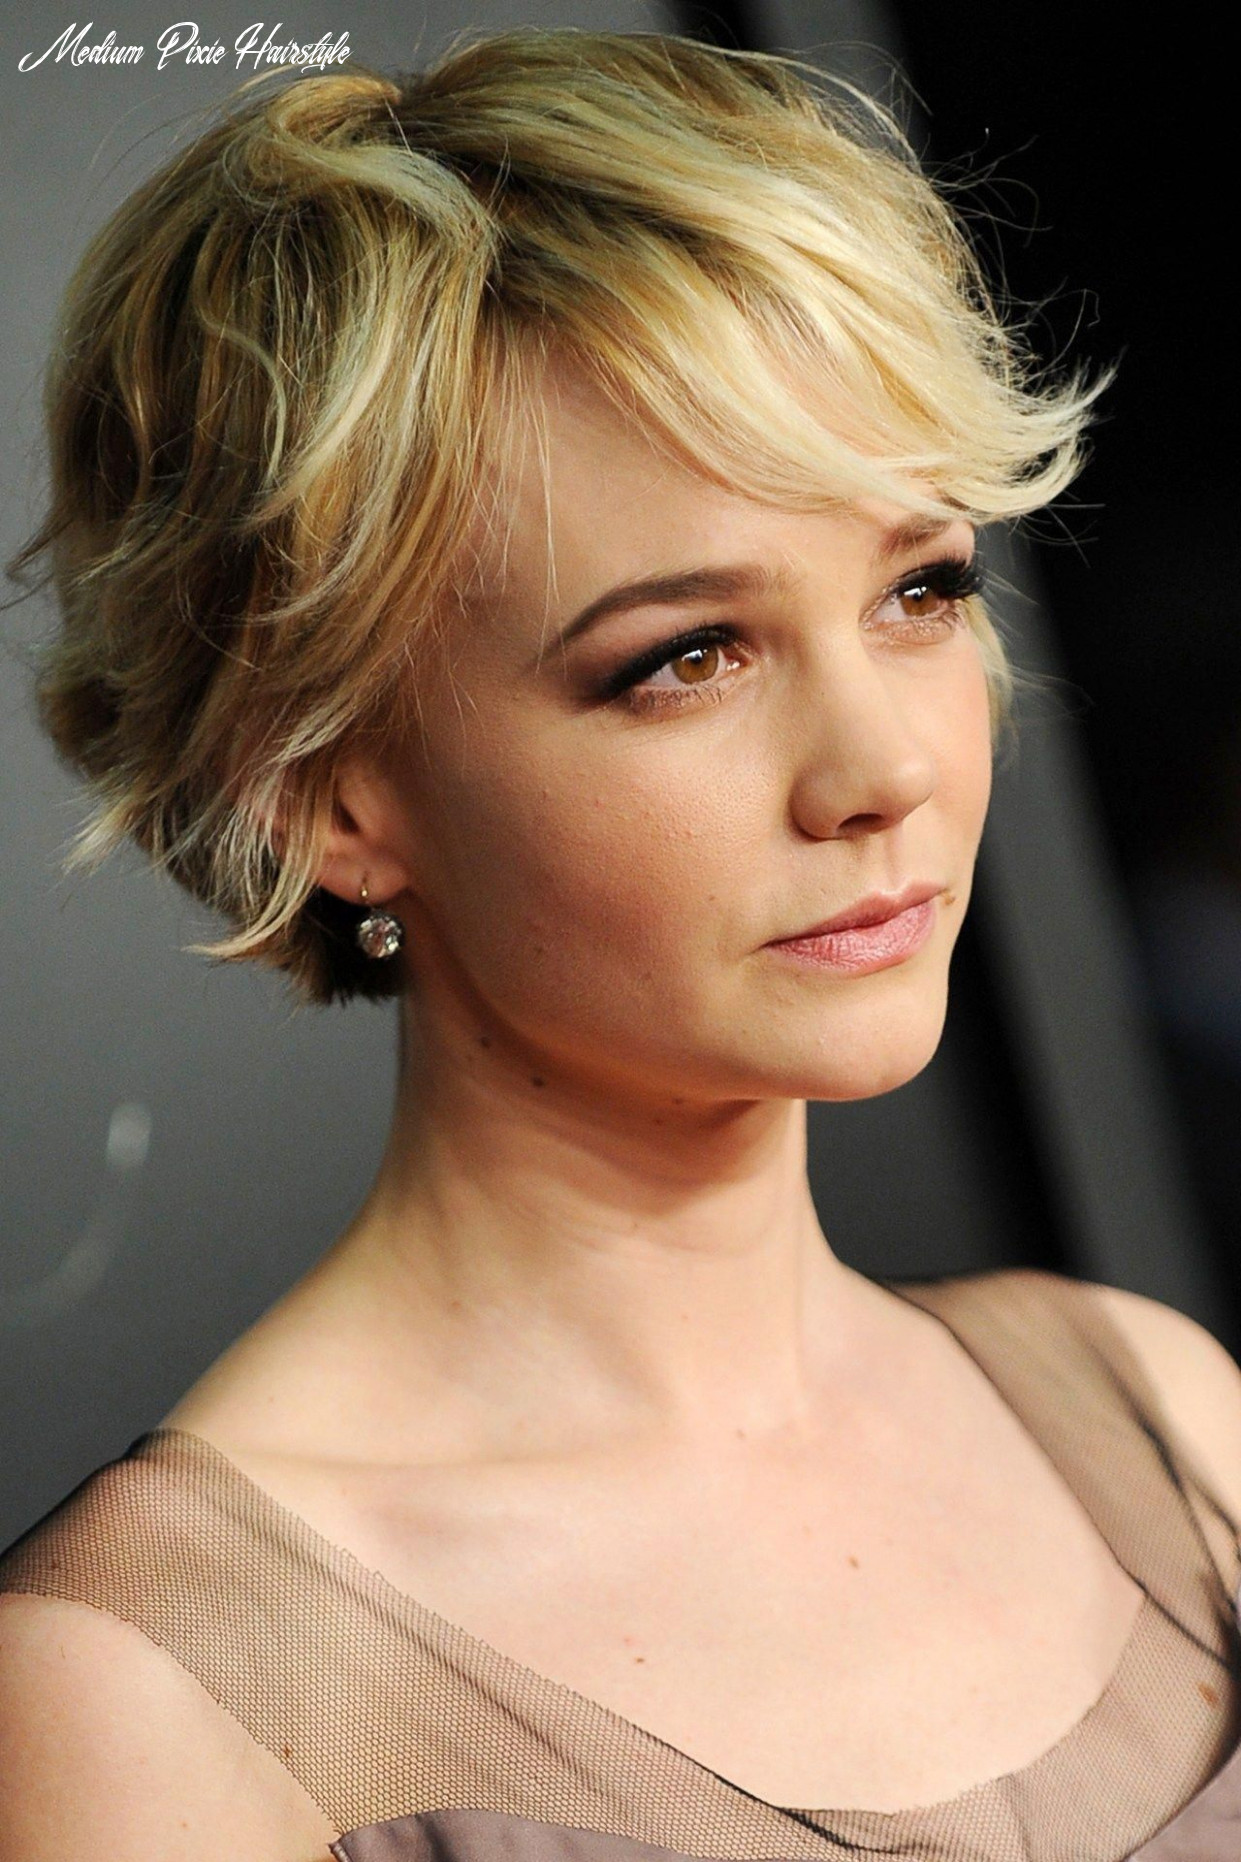 Short hairstyles|pixie hairstyles|short hair|hairstyle|short